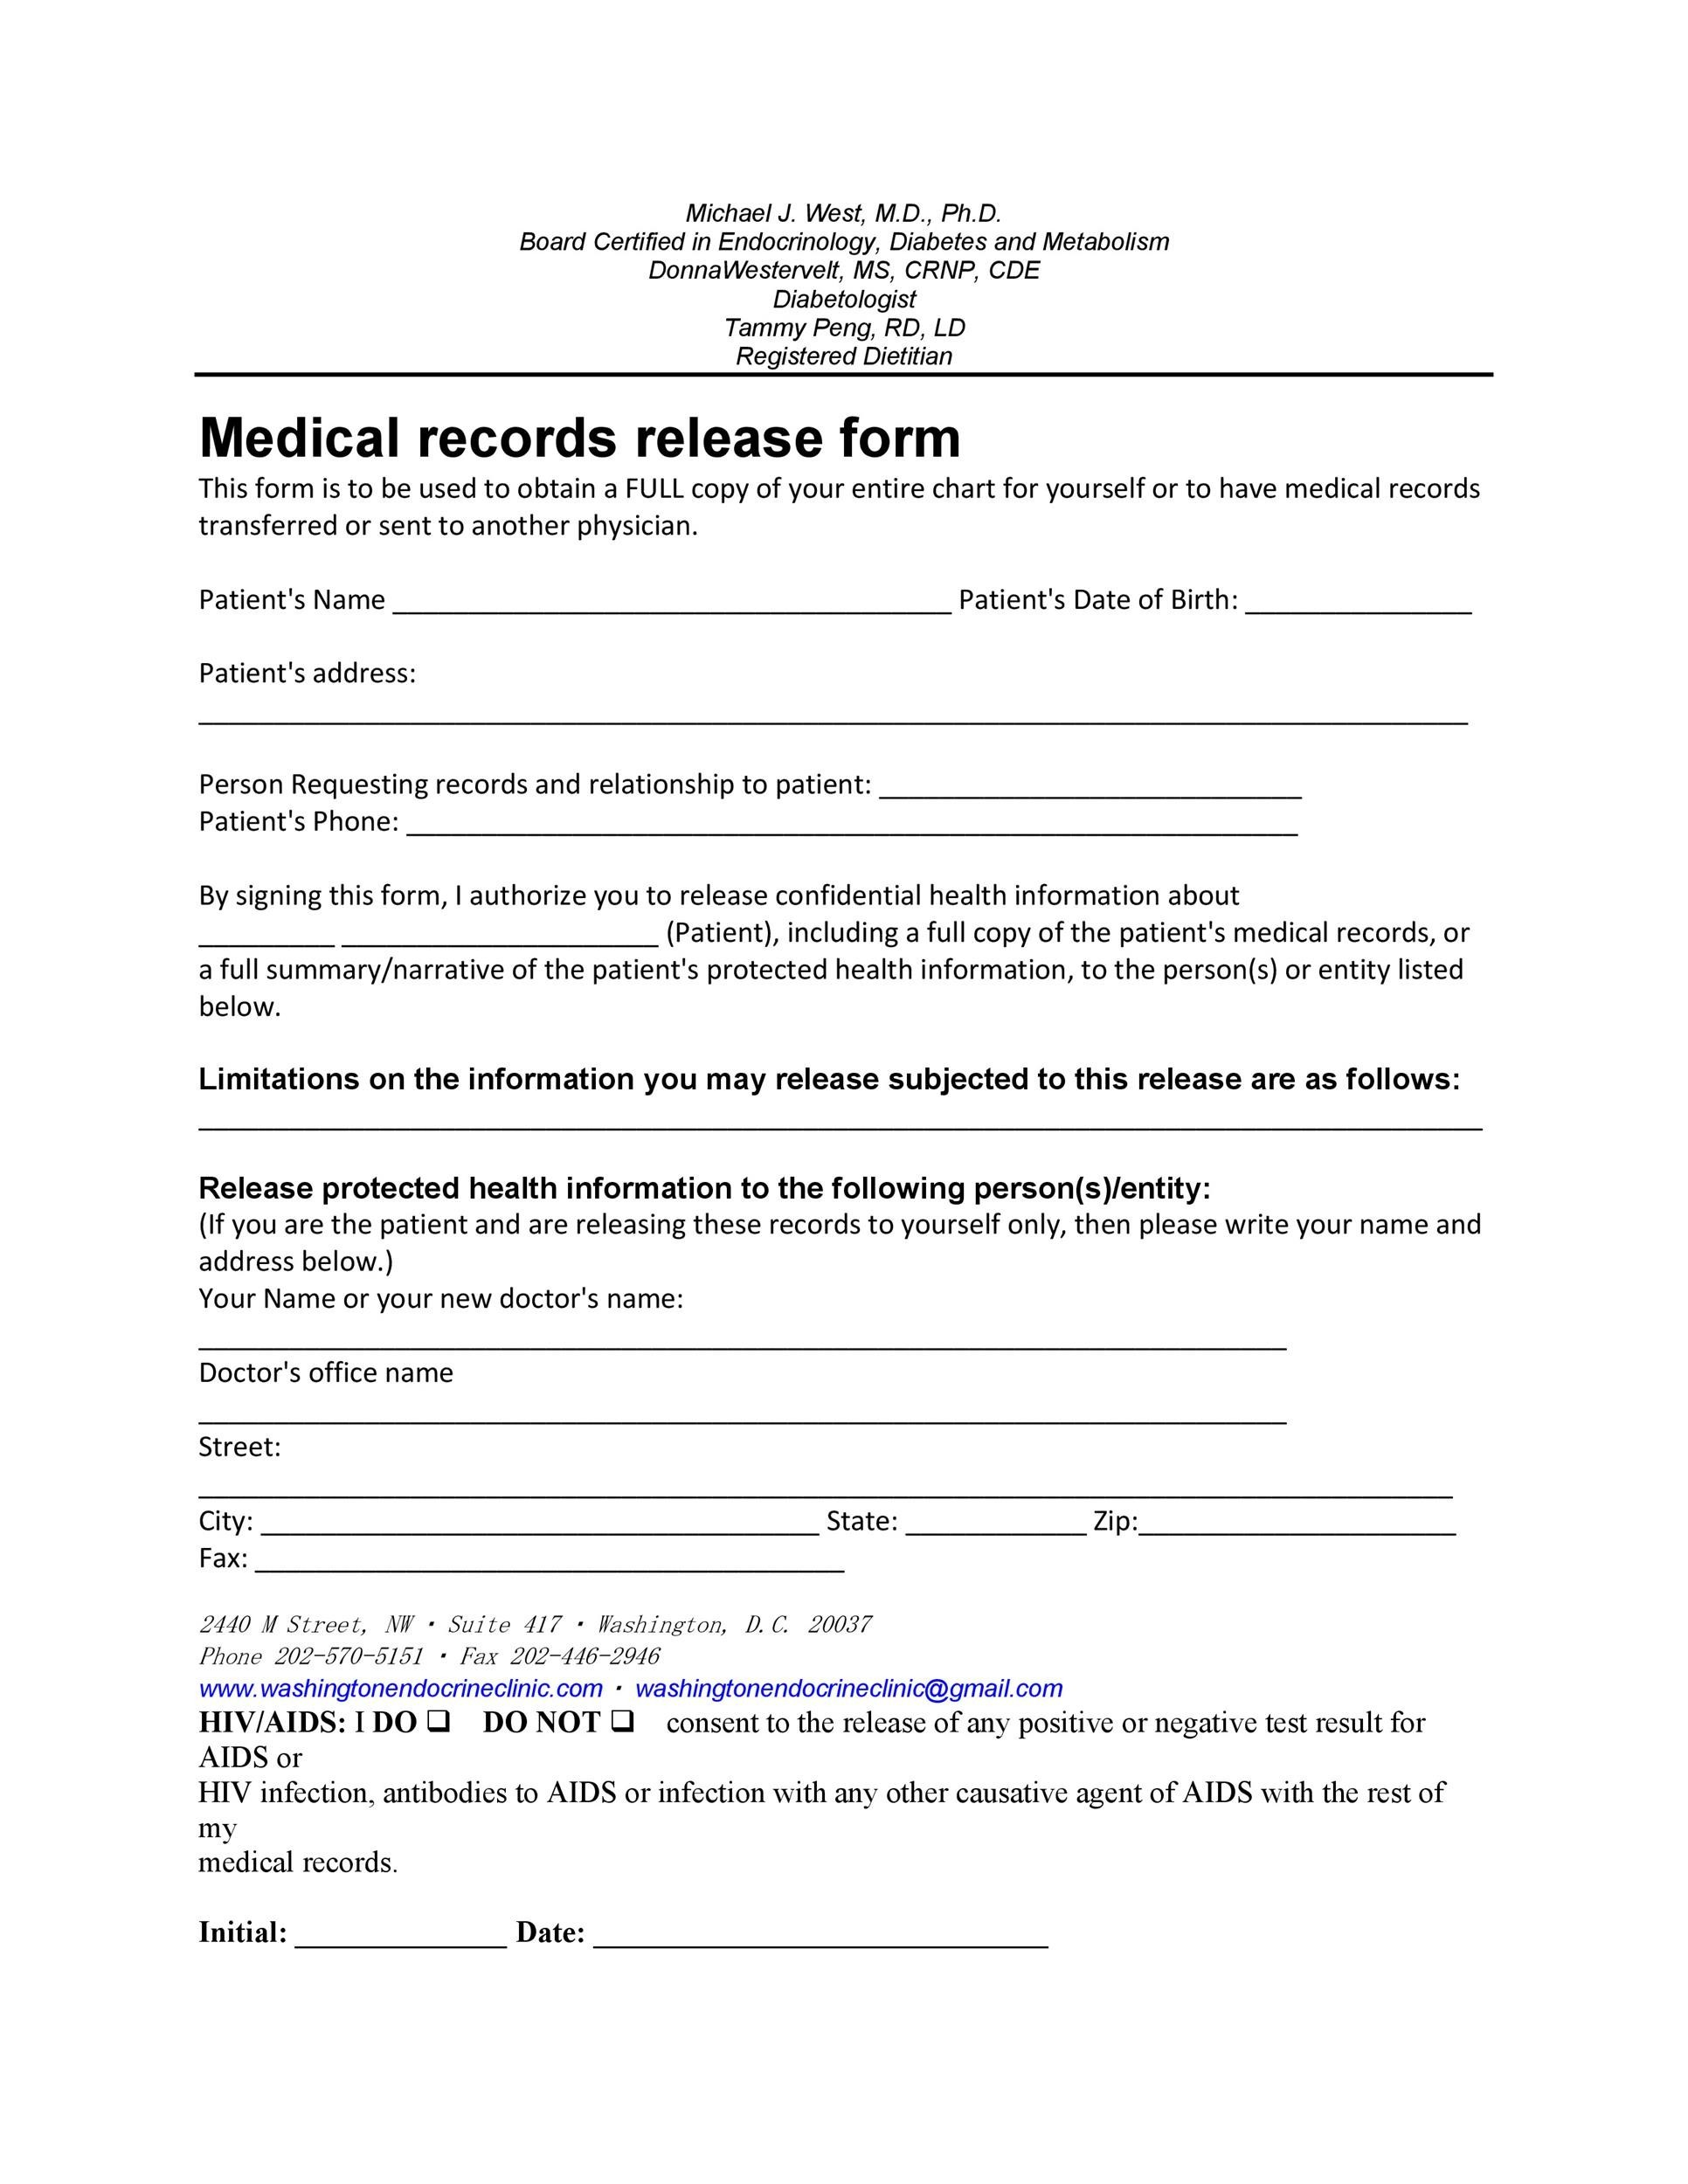 Printable Medical Release Form 05  Medical Record Release Form Template